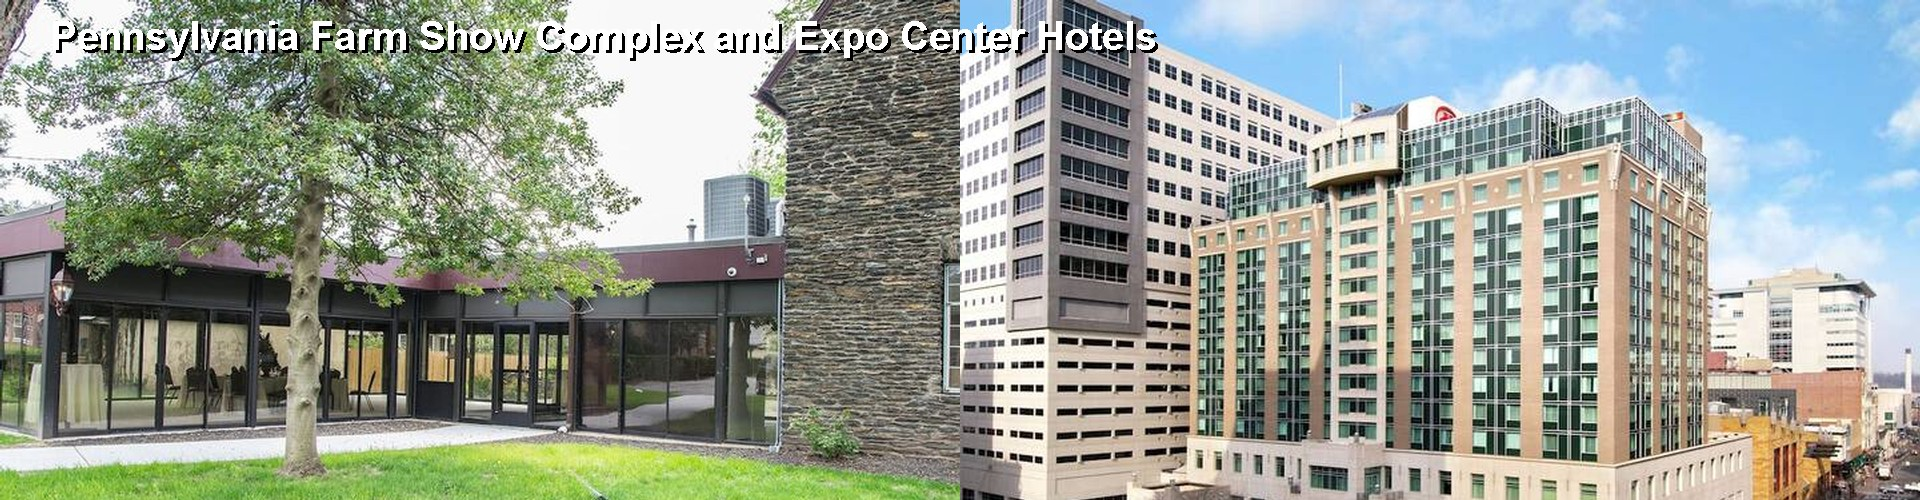 5 Best Hotels near Pennsylvania Farm Show Complex and Expo Center